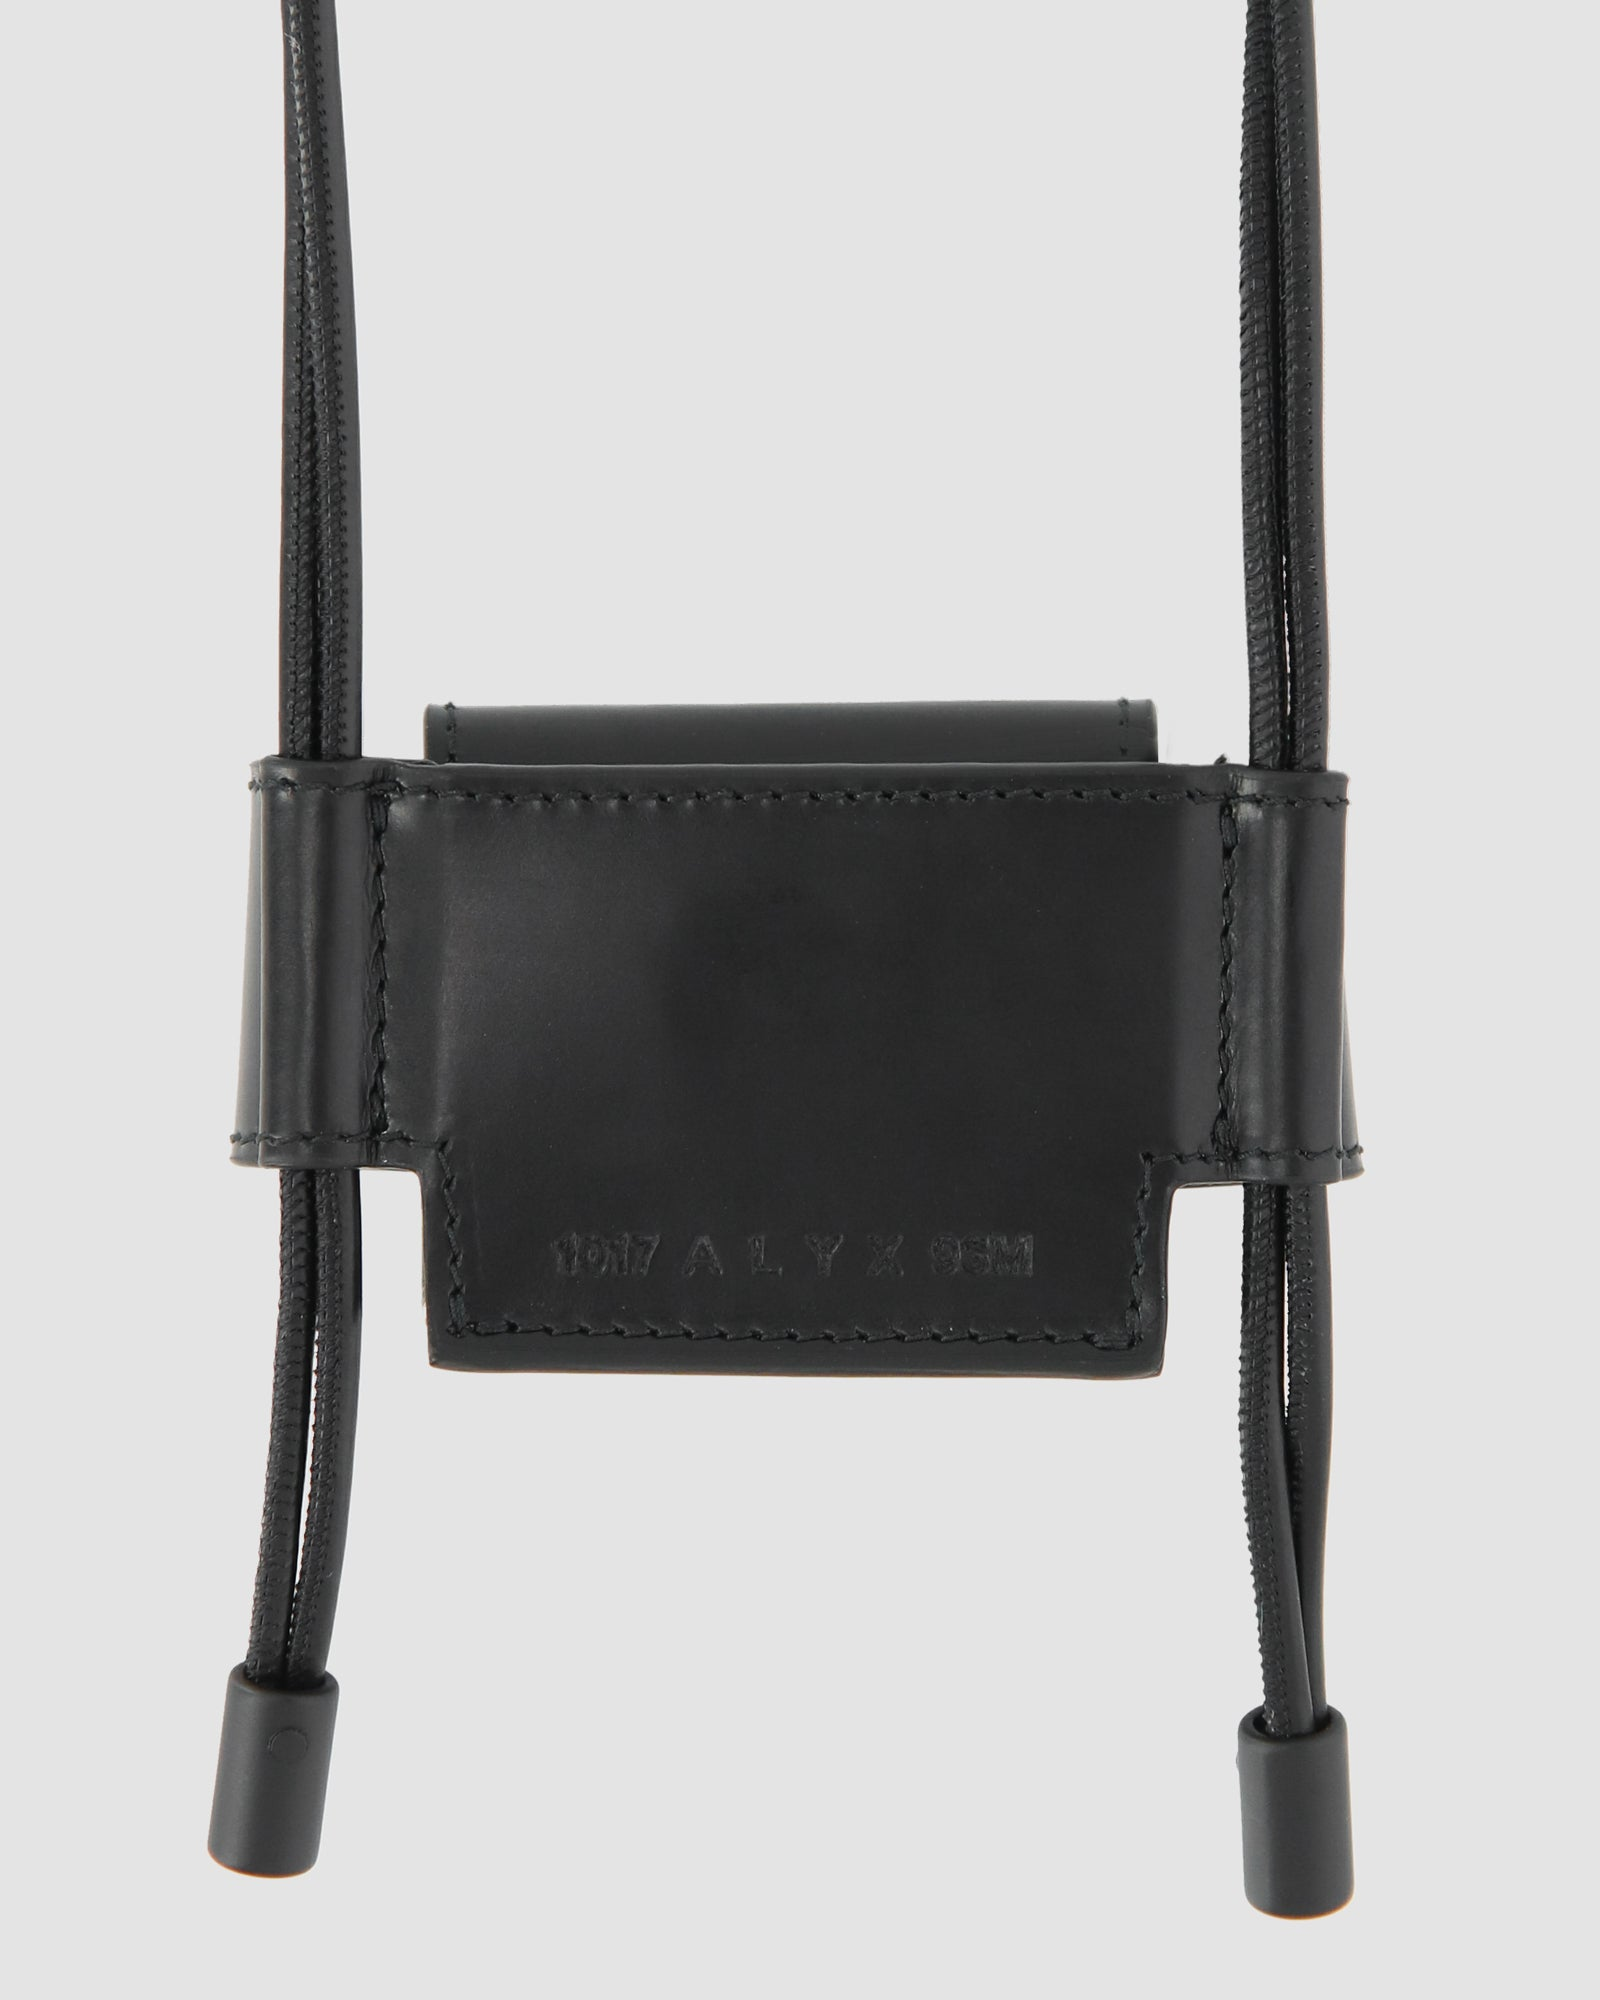 1017 ALYX 9SM | 1017 ALYX 9SM BEOPLAY E8 CARRIER CASE | Bag | Accessories, B&O, Bag Online, Bags, Black, F20, Man, SHOULDER BAGS, UNISEX, Woman